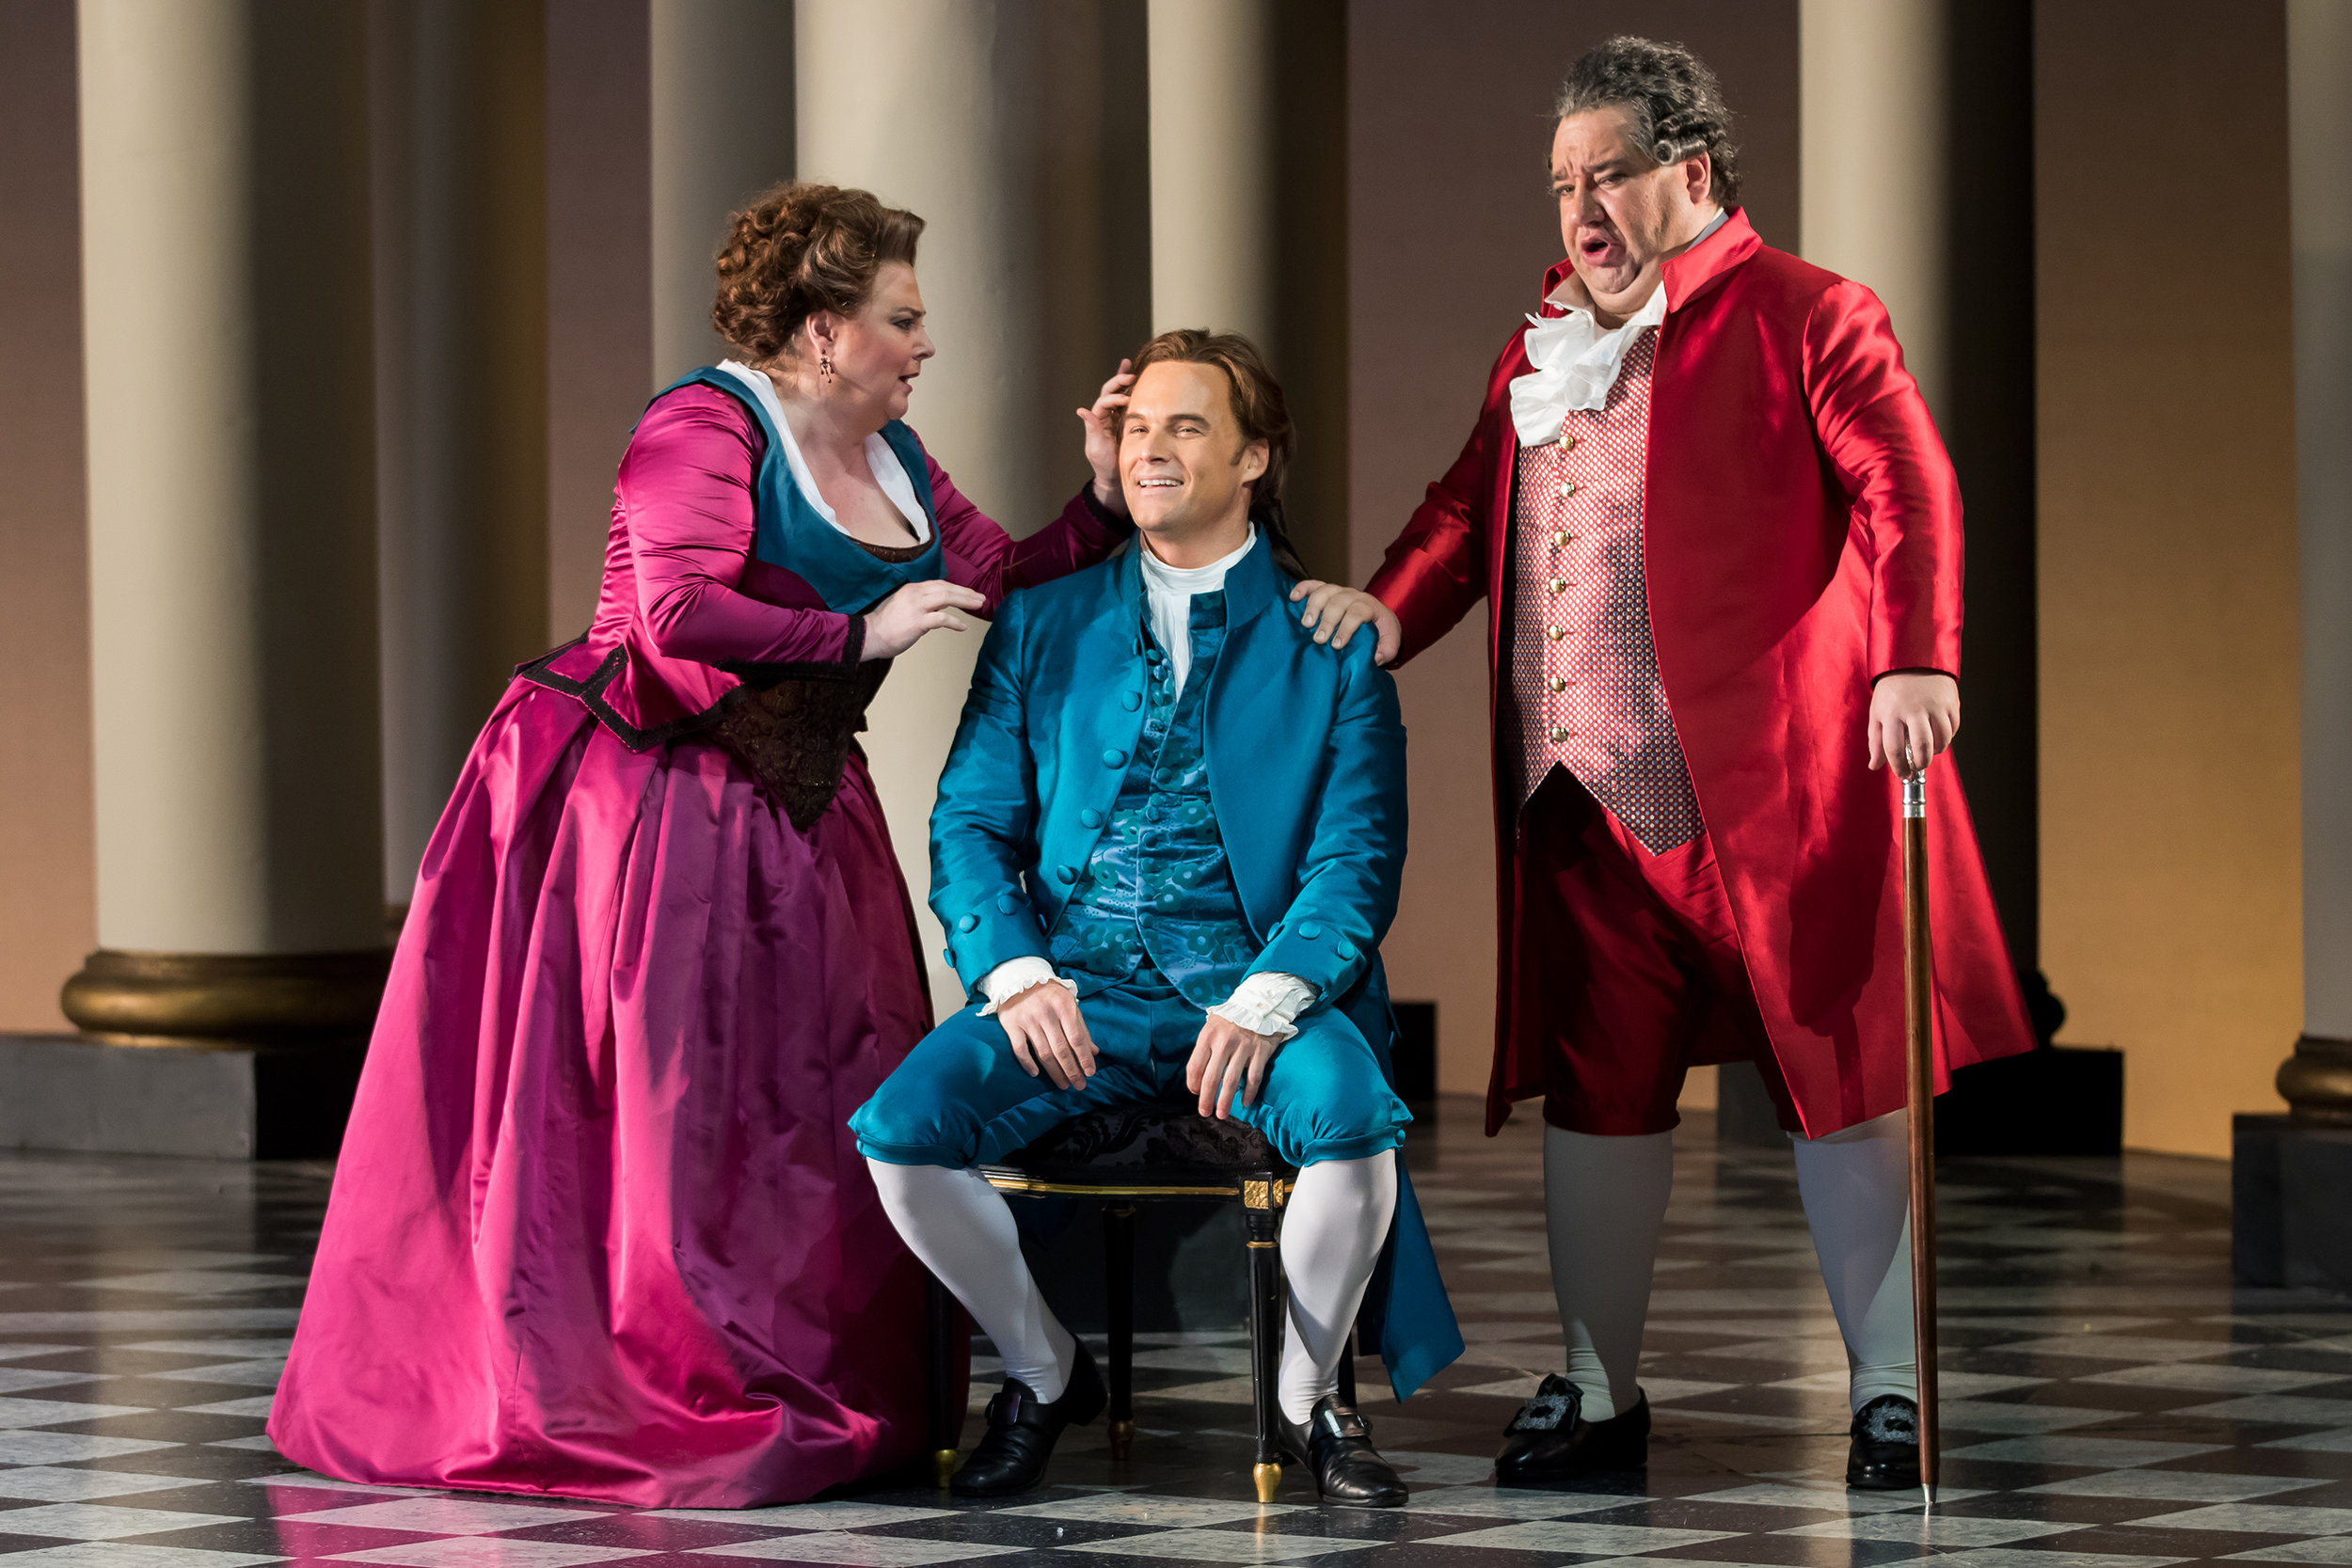 Elizabeth Bishop as Marcellina, Ryan McKinny as Figaro, and Valeriano Lanchas as Dr. Bartolo. Photo by Scott Suchman for WNO; photo courtesy of WNO.